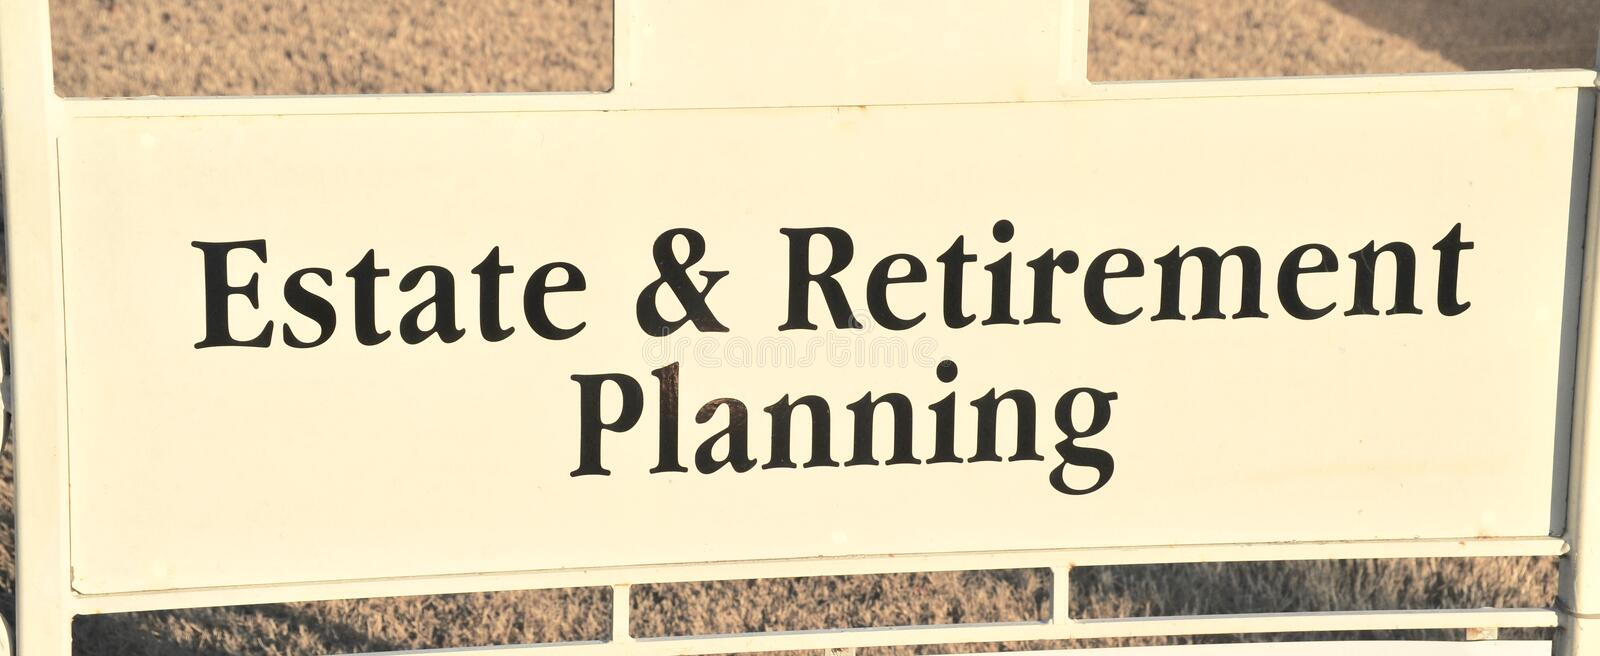 Estate and Retirement Planning royalty free stock image